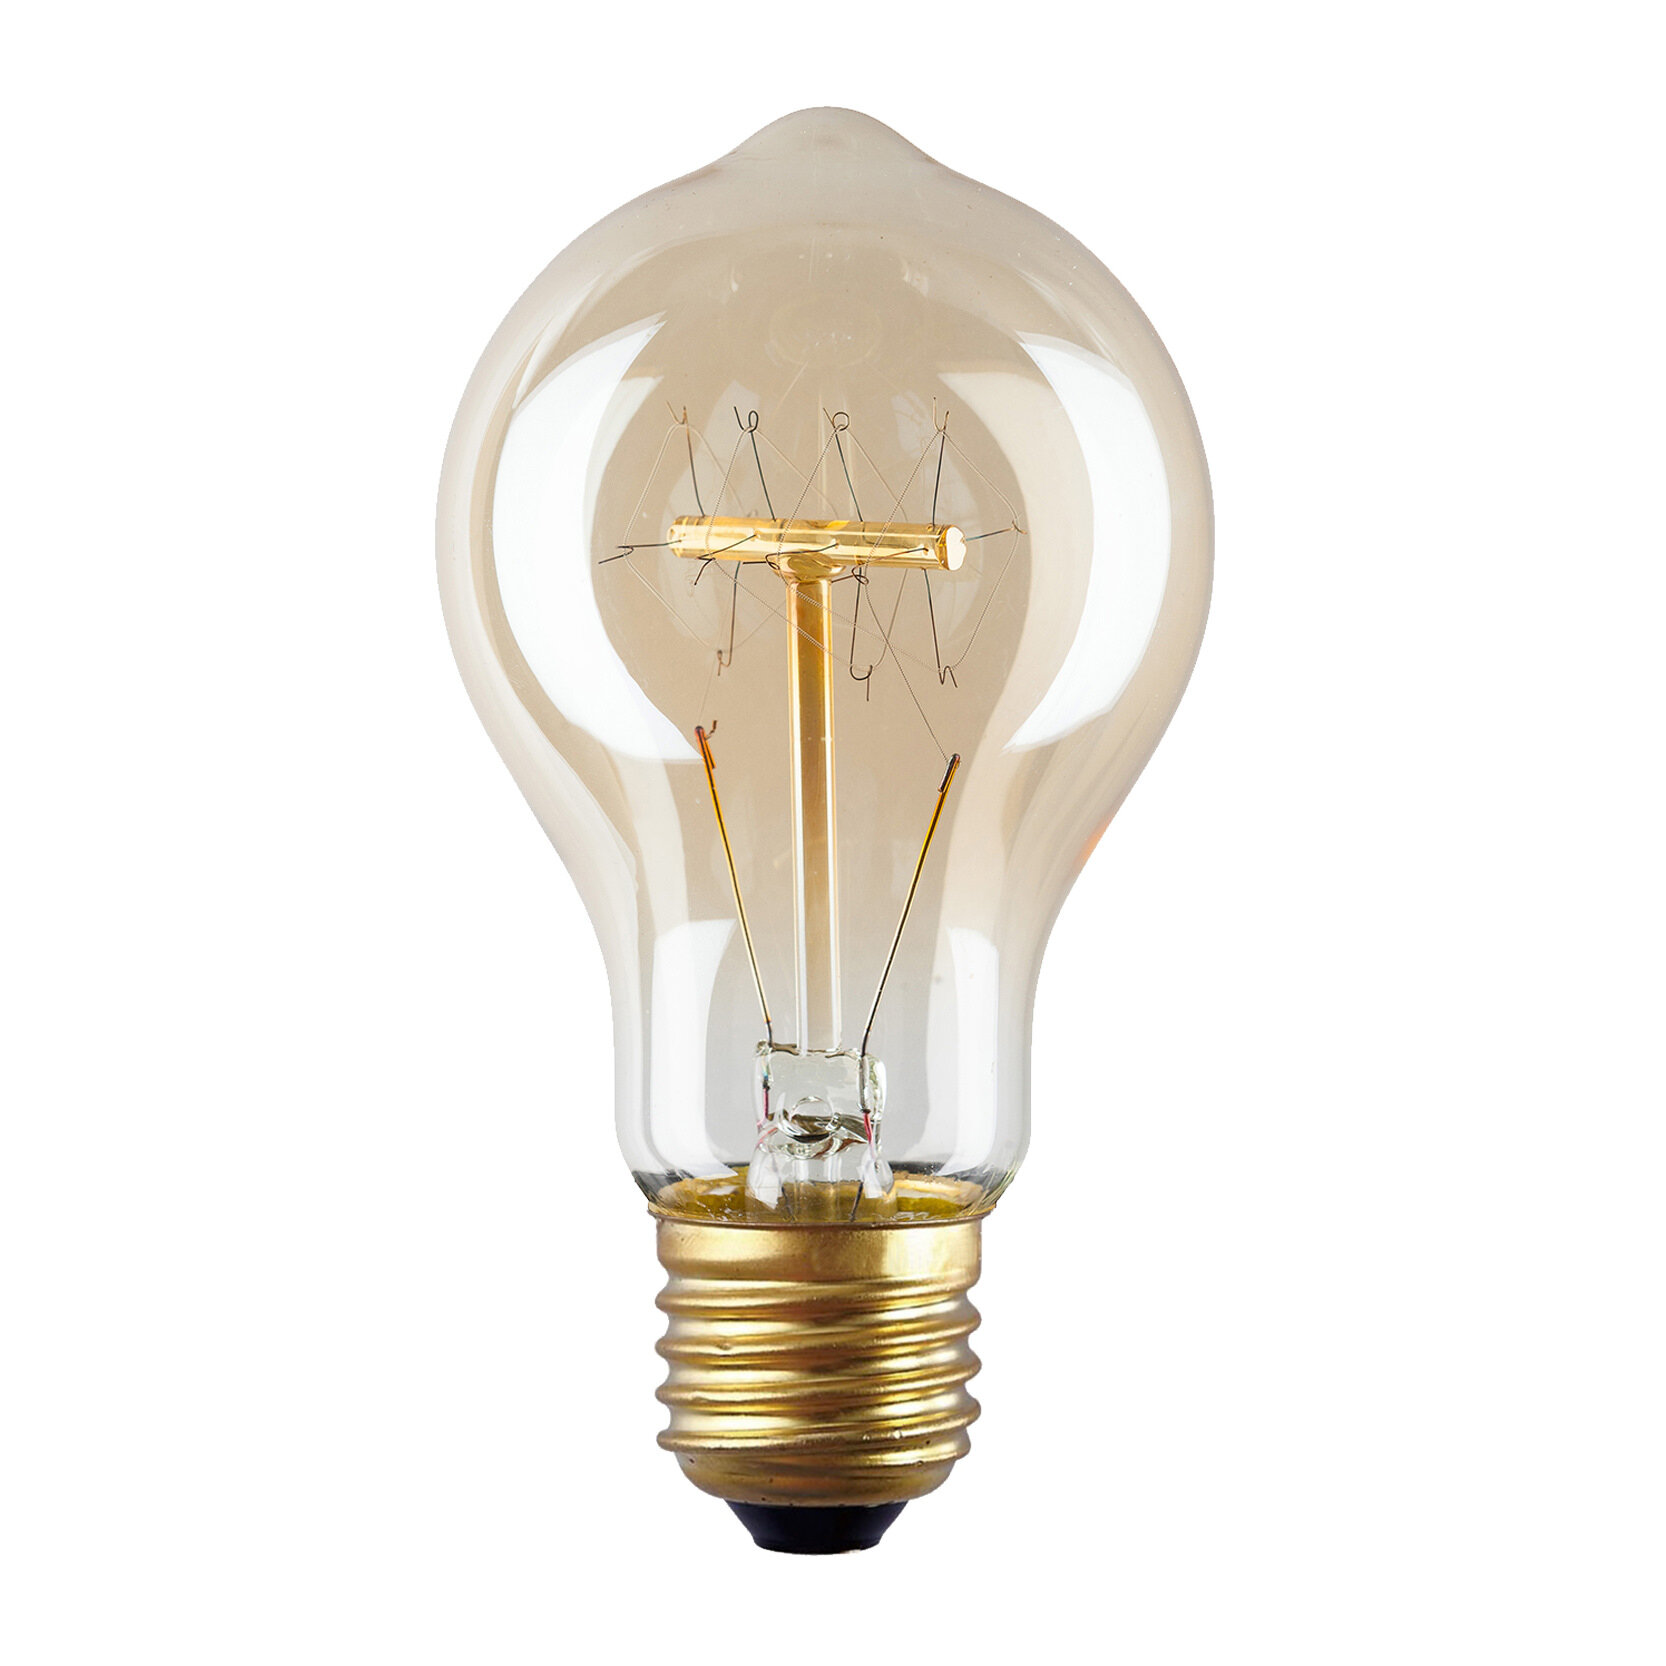 Light Society 40W Amber E26 Incandescent Edison Standard Light Bulb |  Wayfair